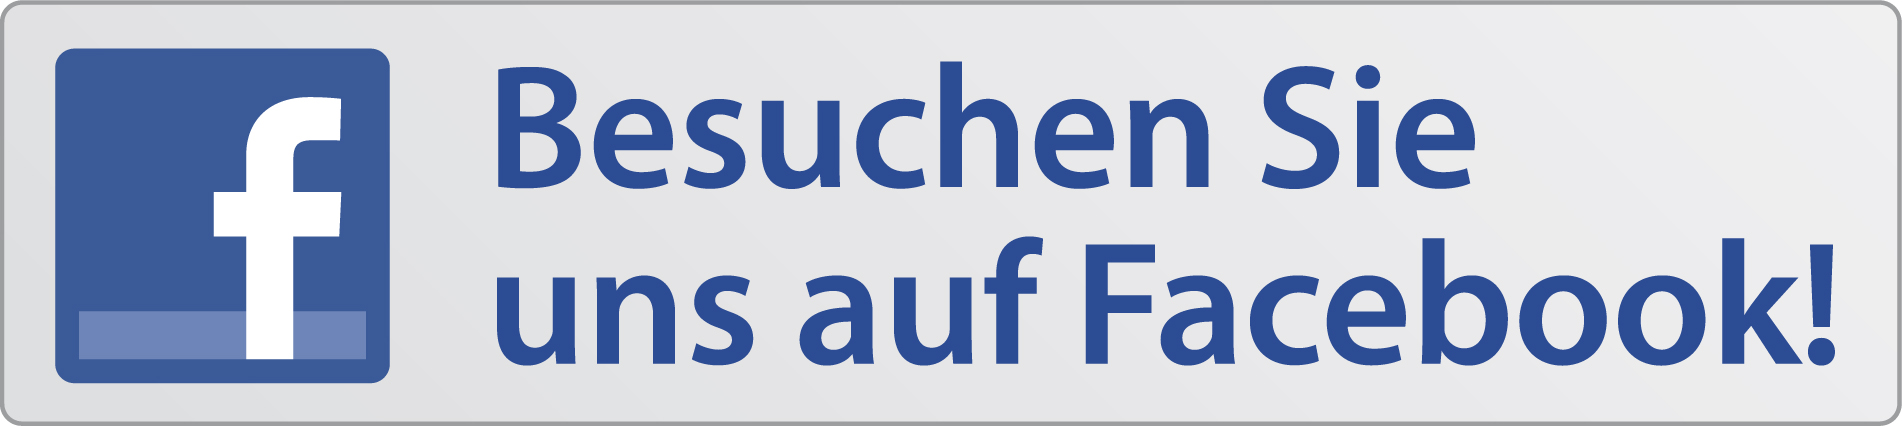 Facebook Profil Allianz Suisse - Lausanne